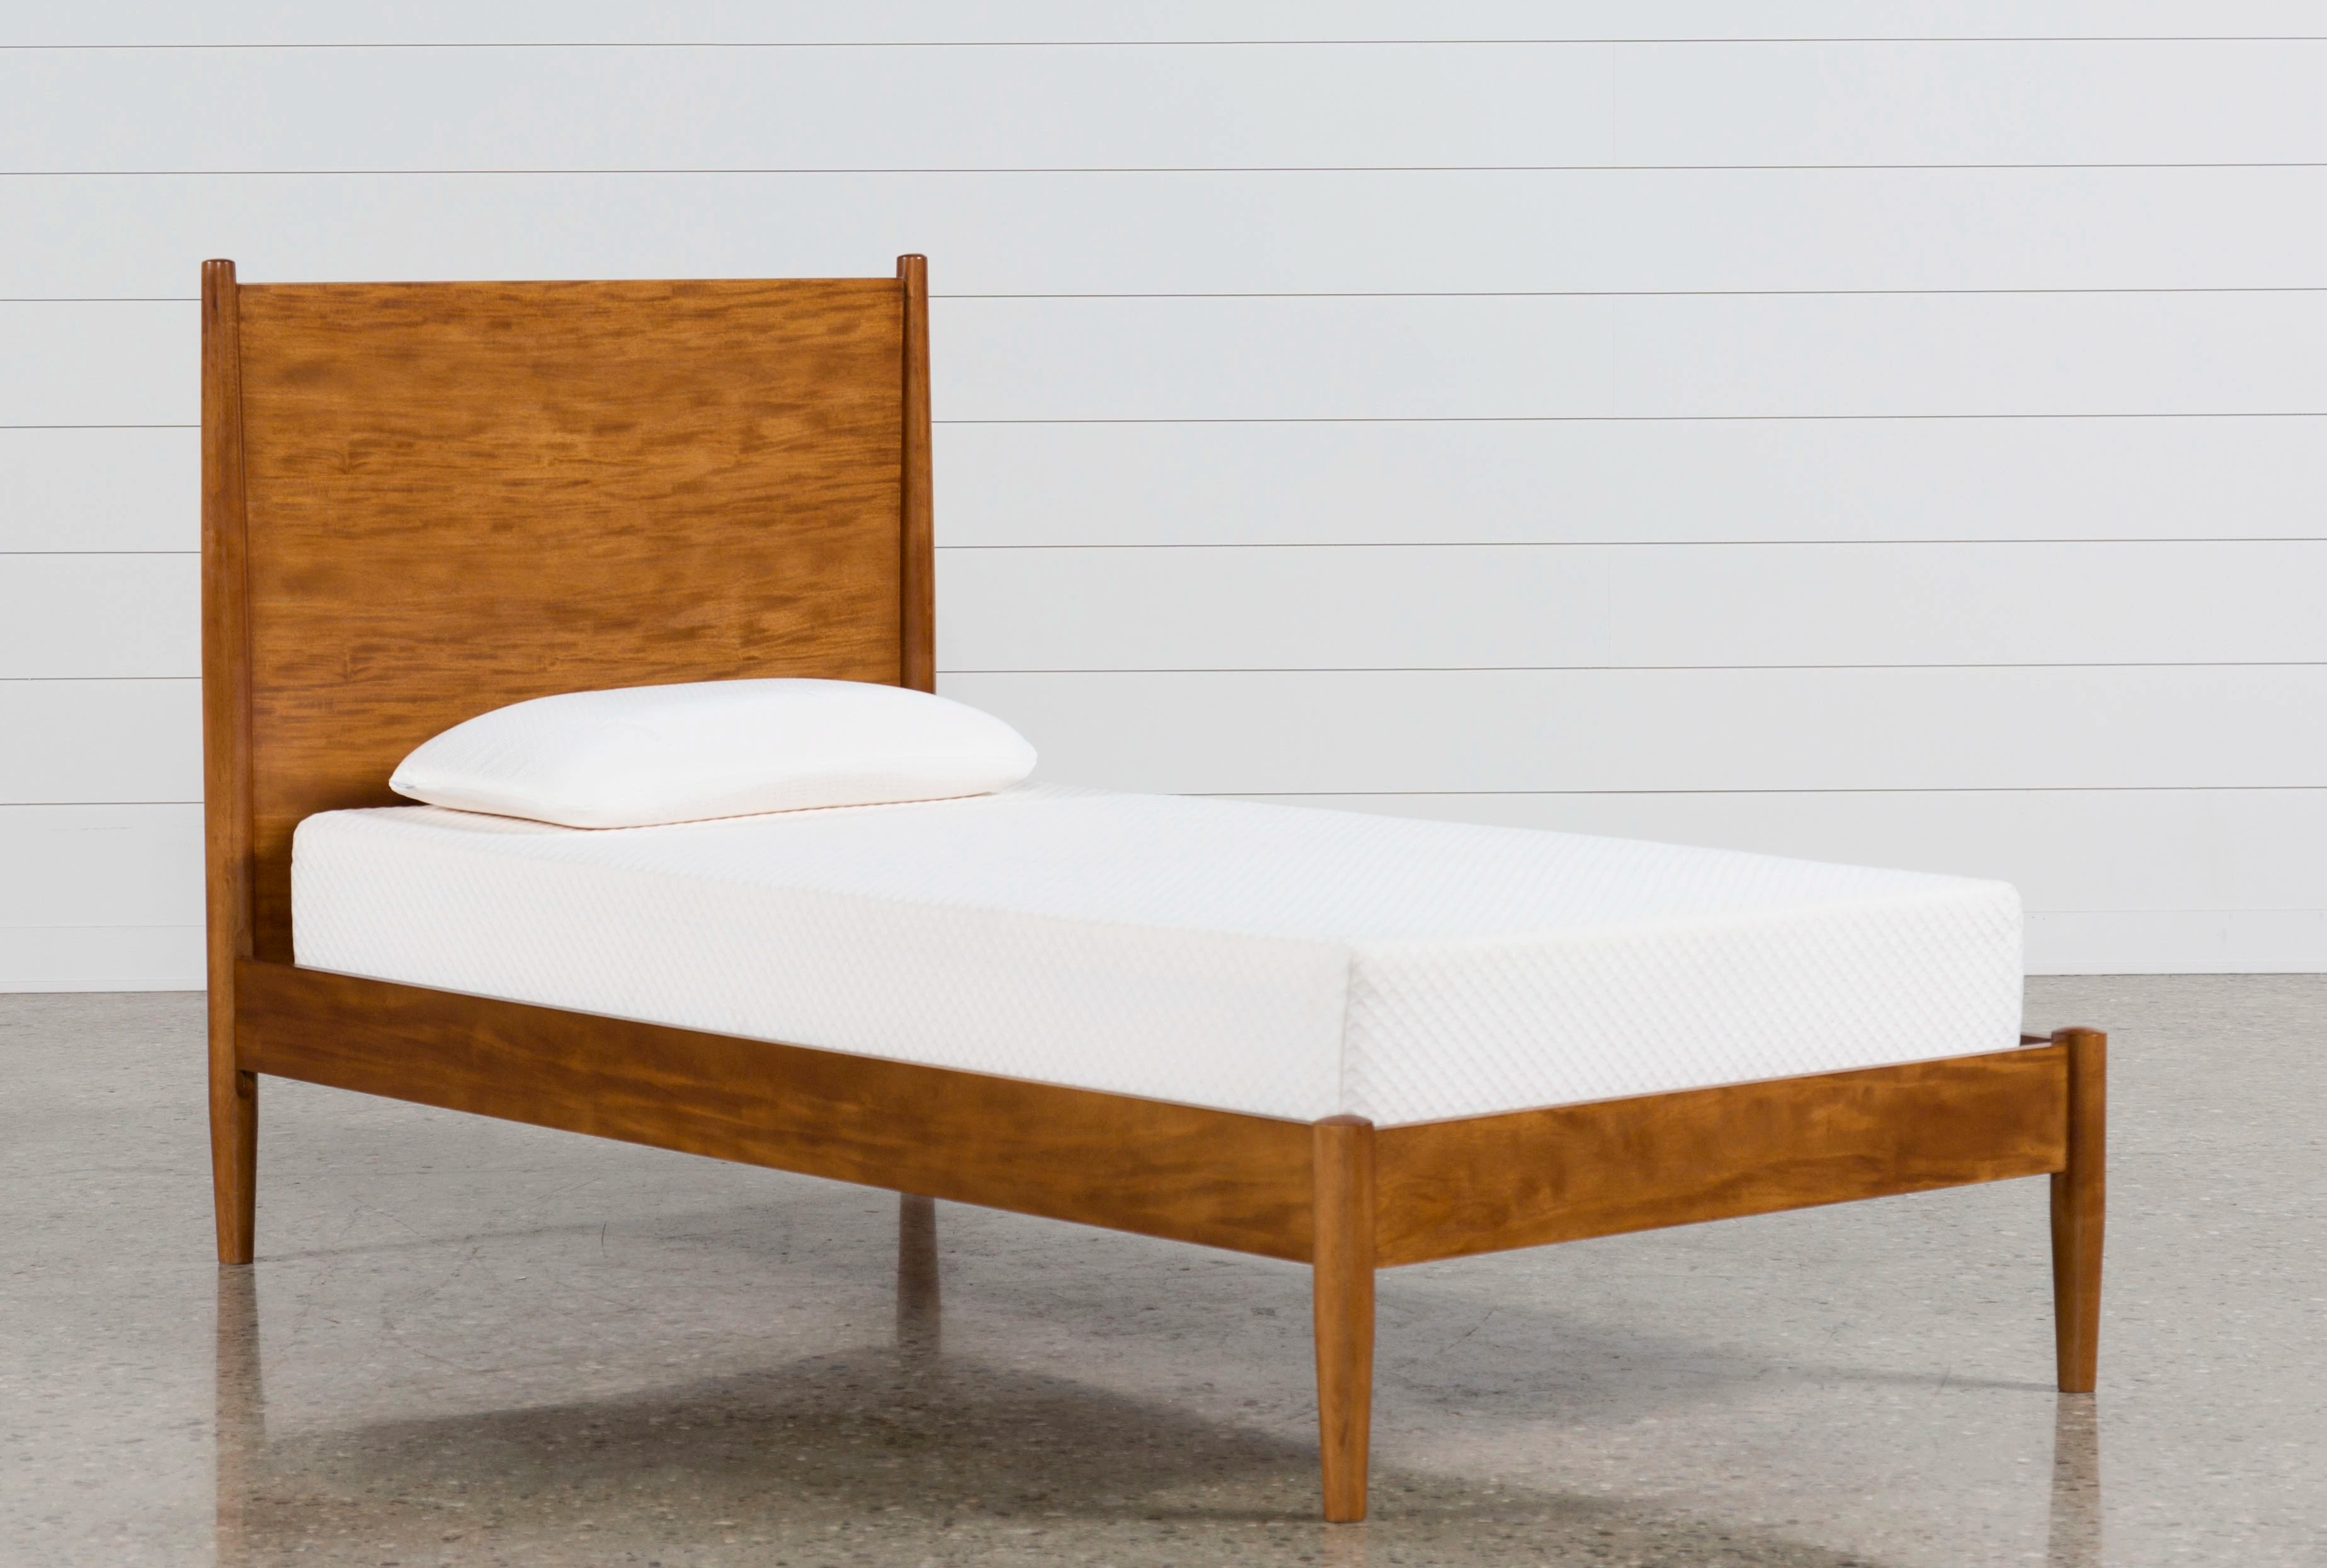 Alton Cherry Twin Platform Bed Qty 1 Has Been Successfully Added To Your Cart